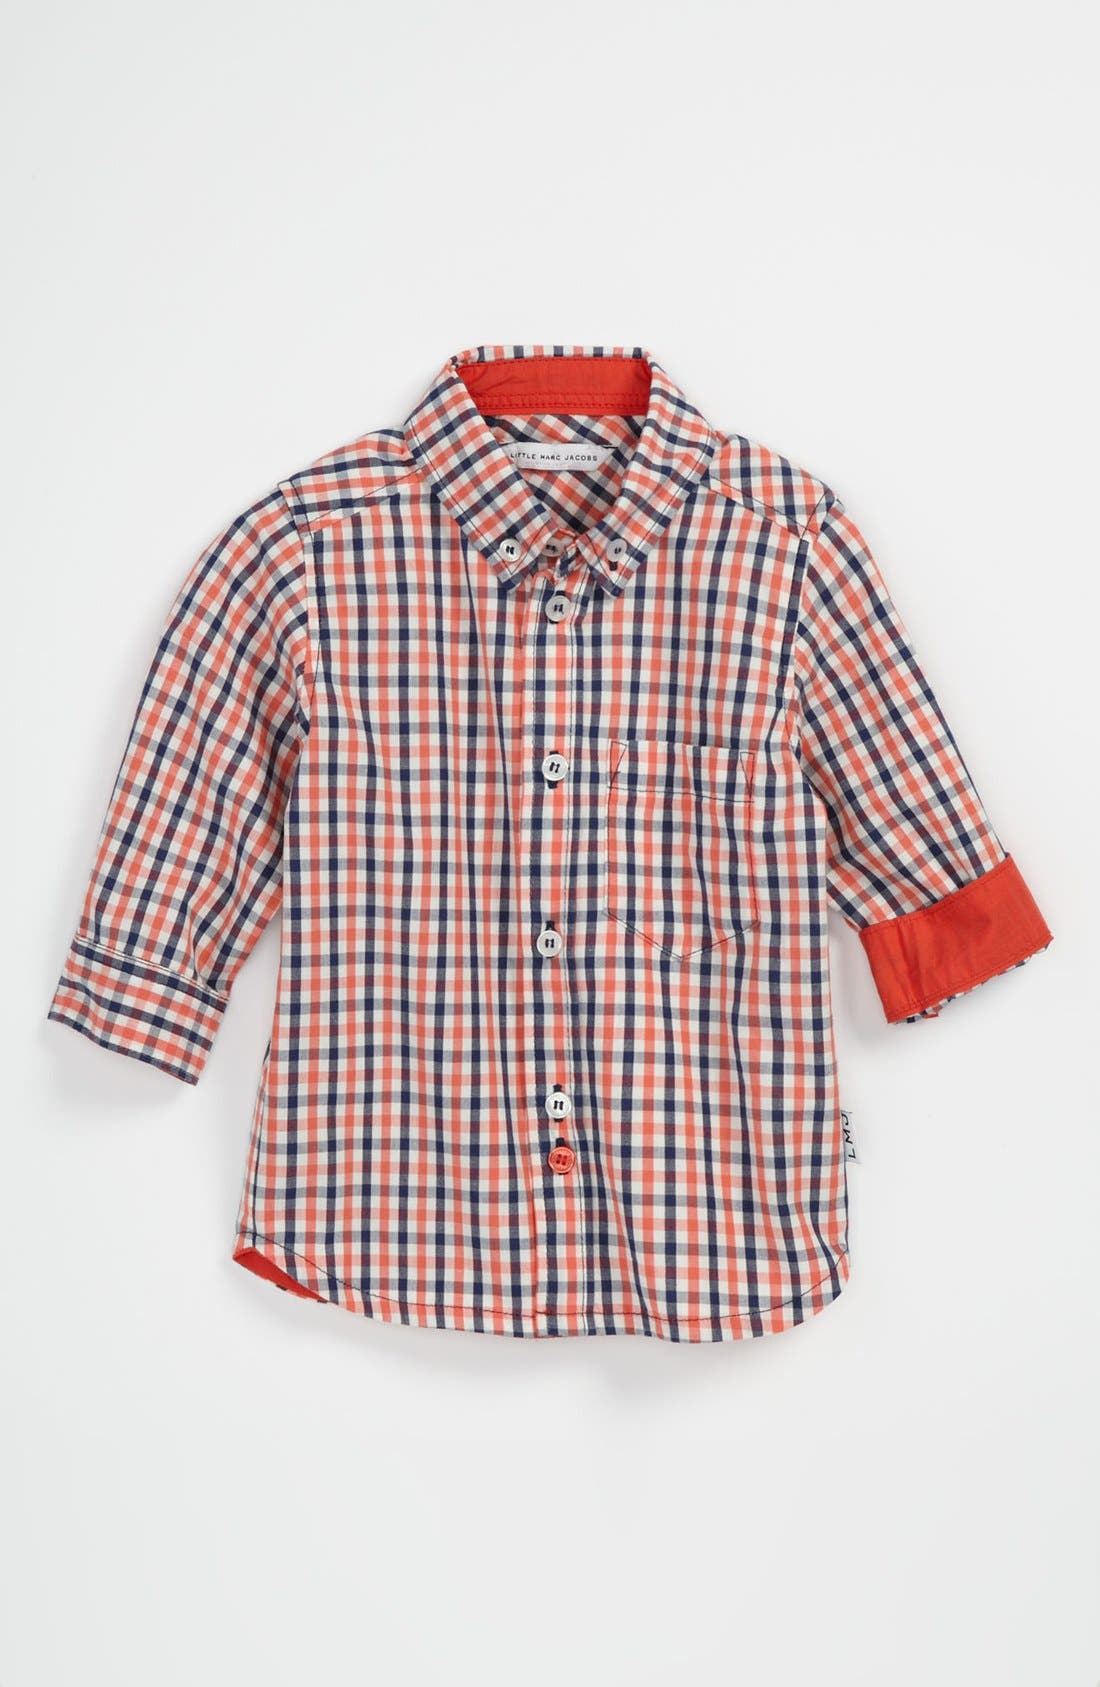 Main Image - LITTLE MARC JACOBS Plaid Woven Shirt (Toddler)